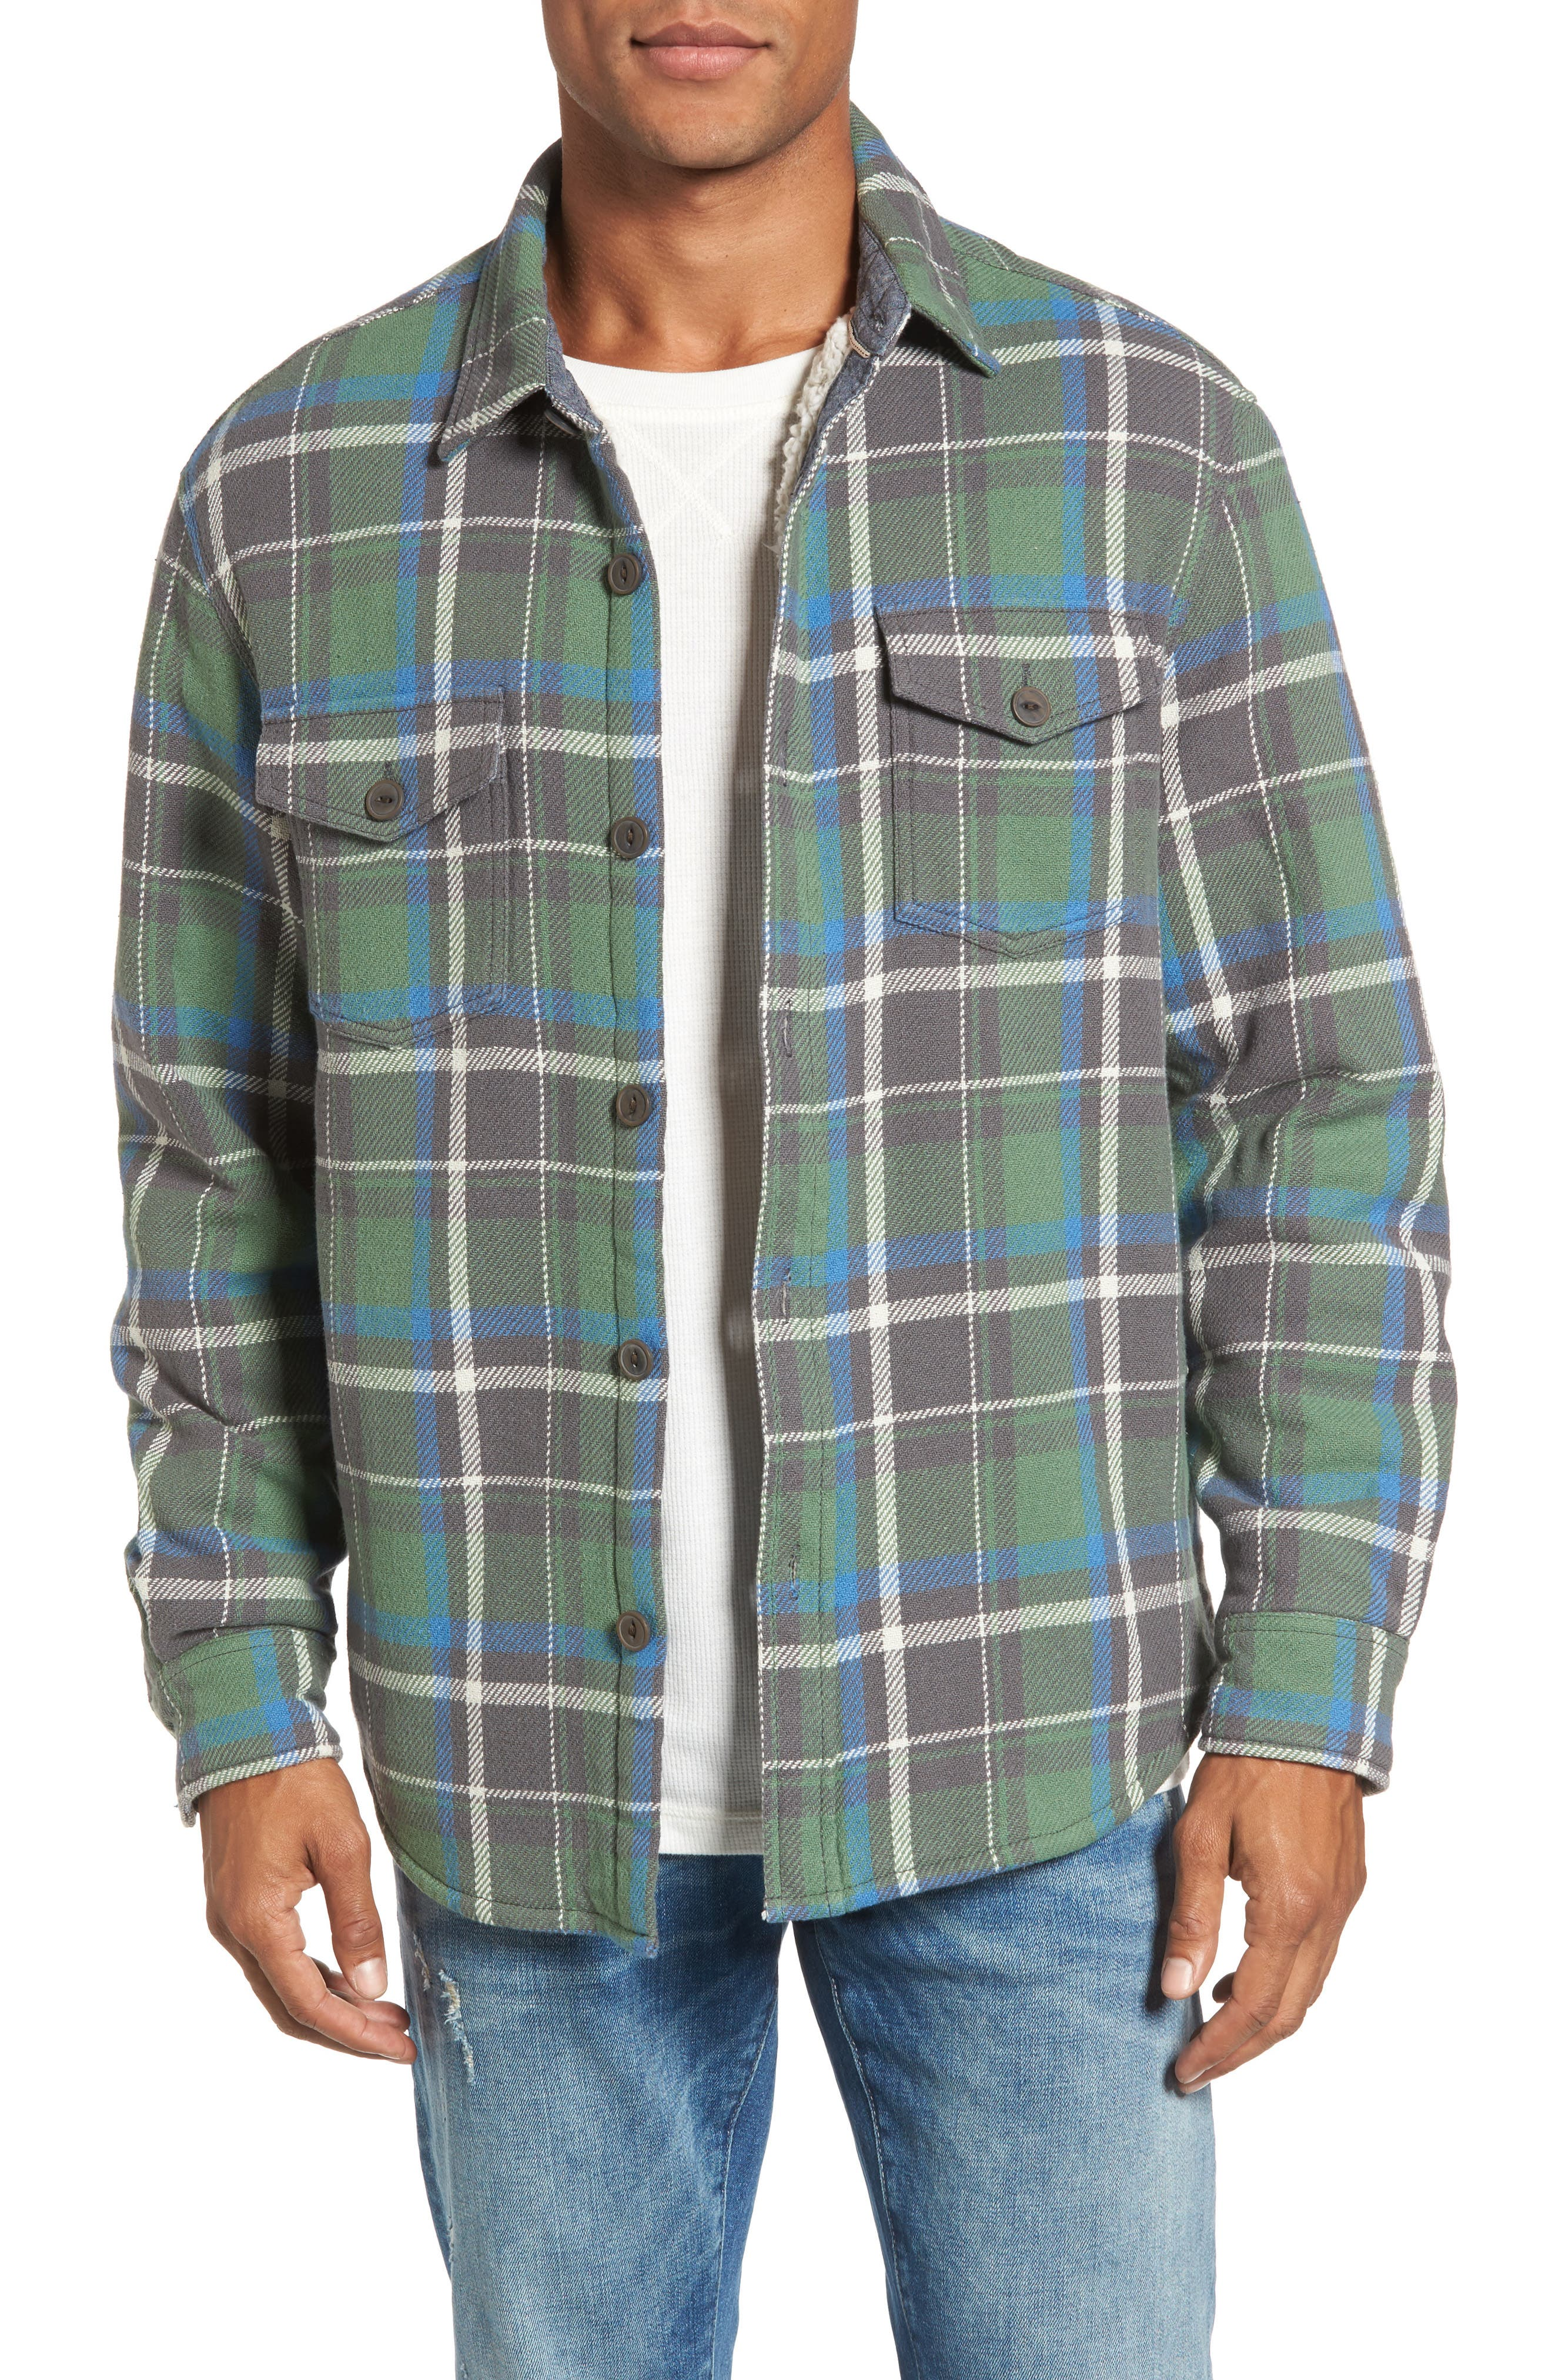 Alternate Image 1 Selected - True Grit Summit Hunter Plaid Faux Shearling Lined Shirt Jacket